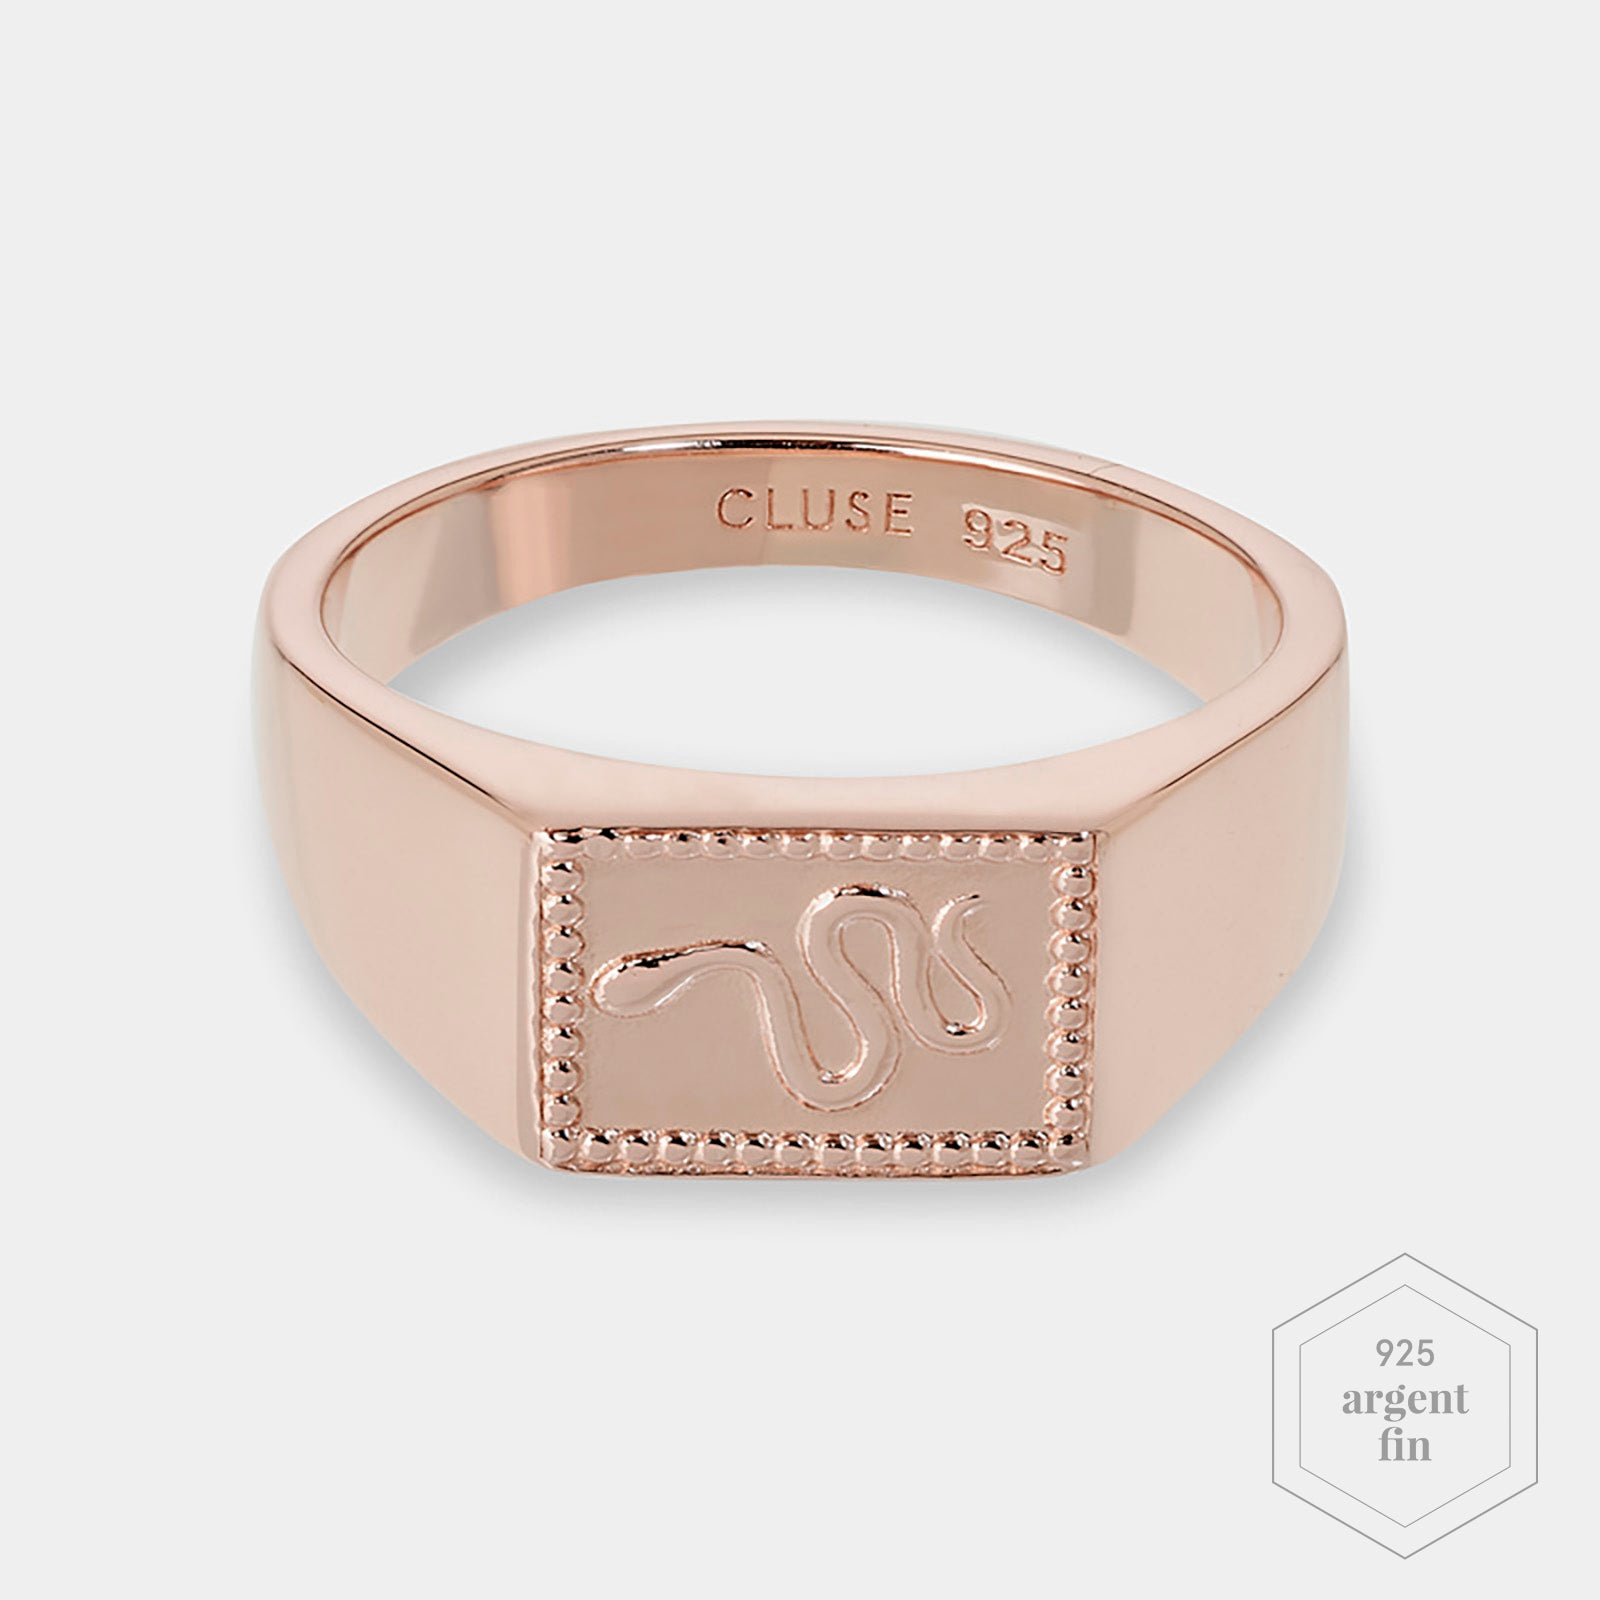 CLUSE Force Tropicale Rose Gold Signet Rectangular Ring 52 CLJ40012-52 - Bague taille 52